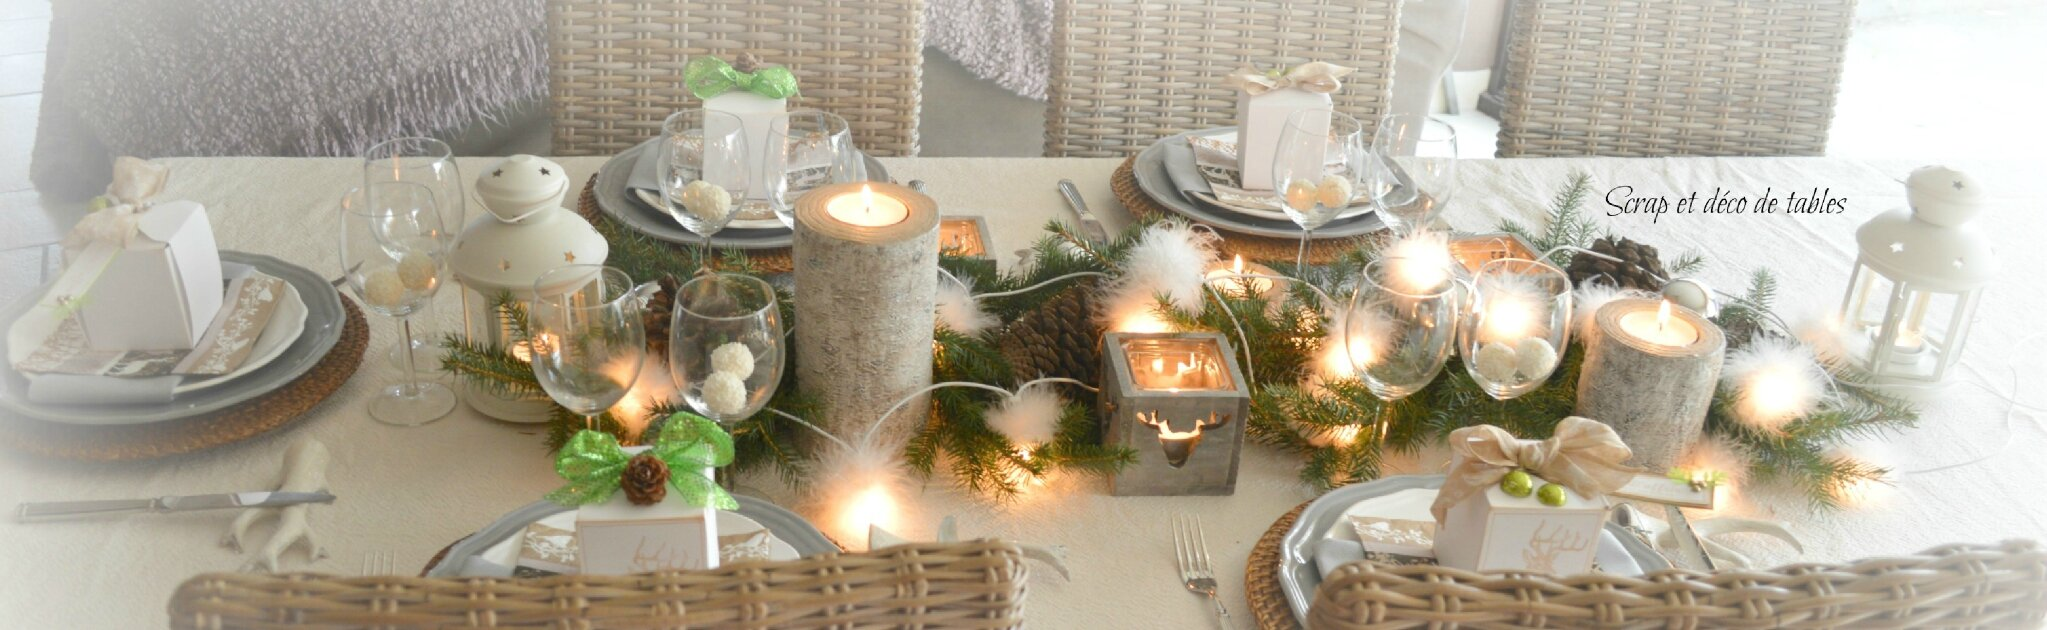 Deco noel nature - Decoration de table nature ...